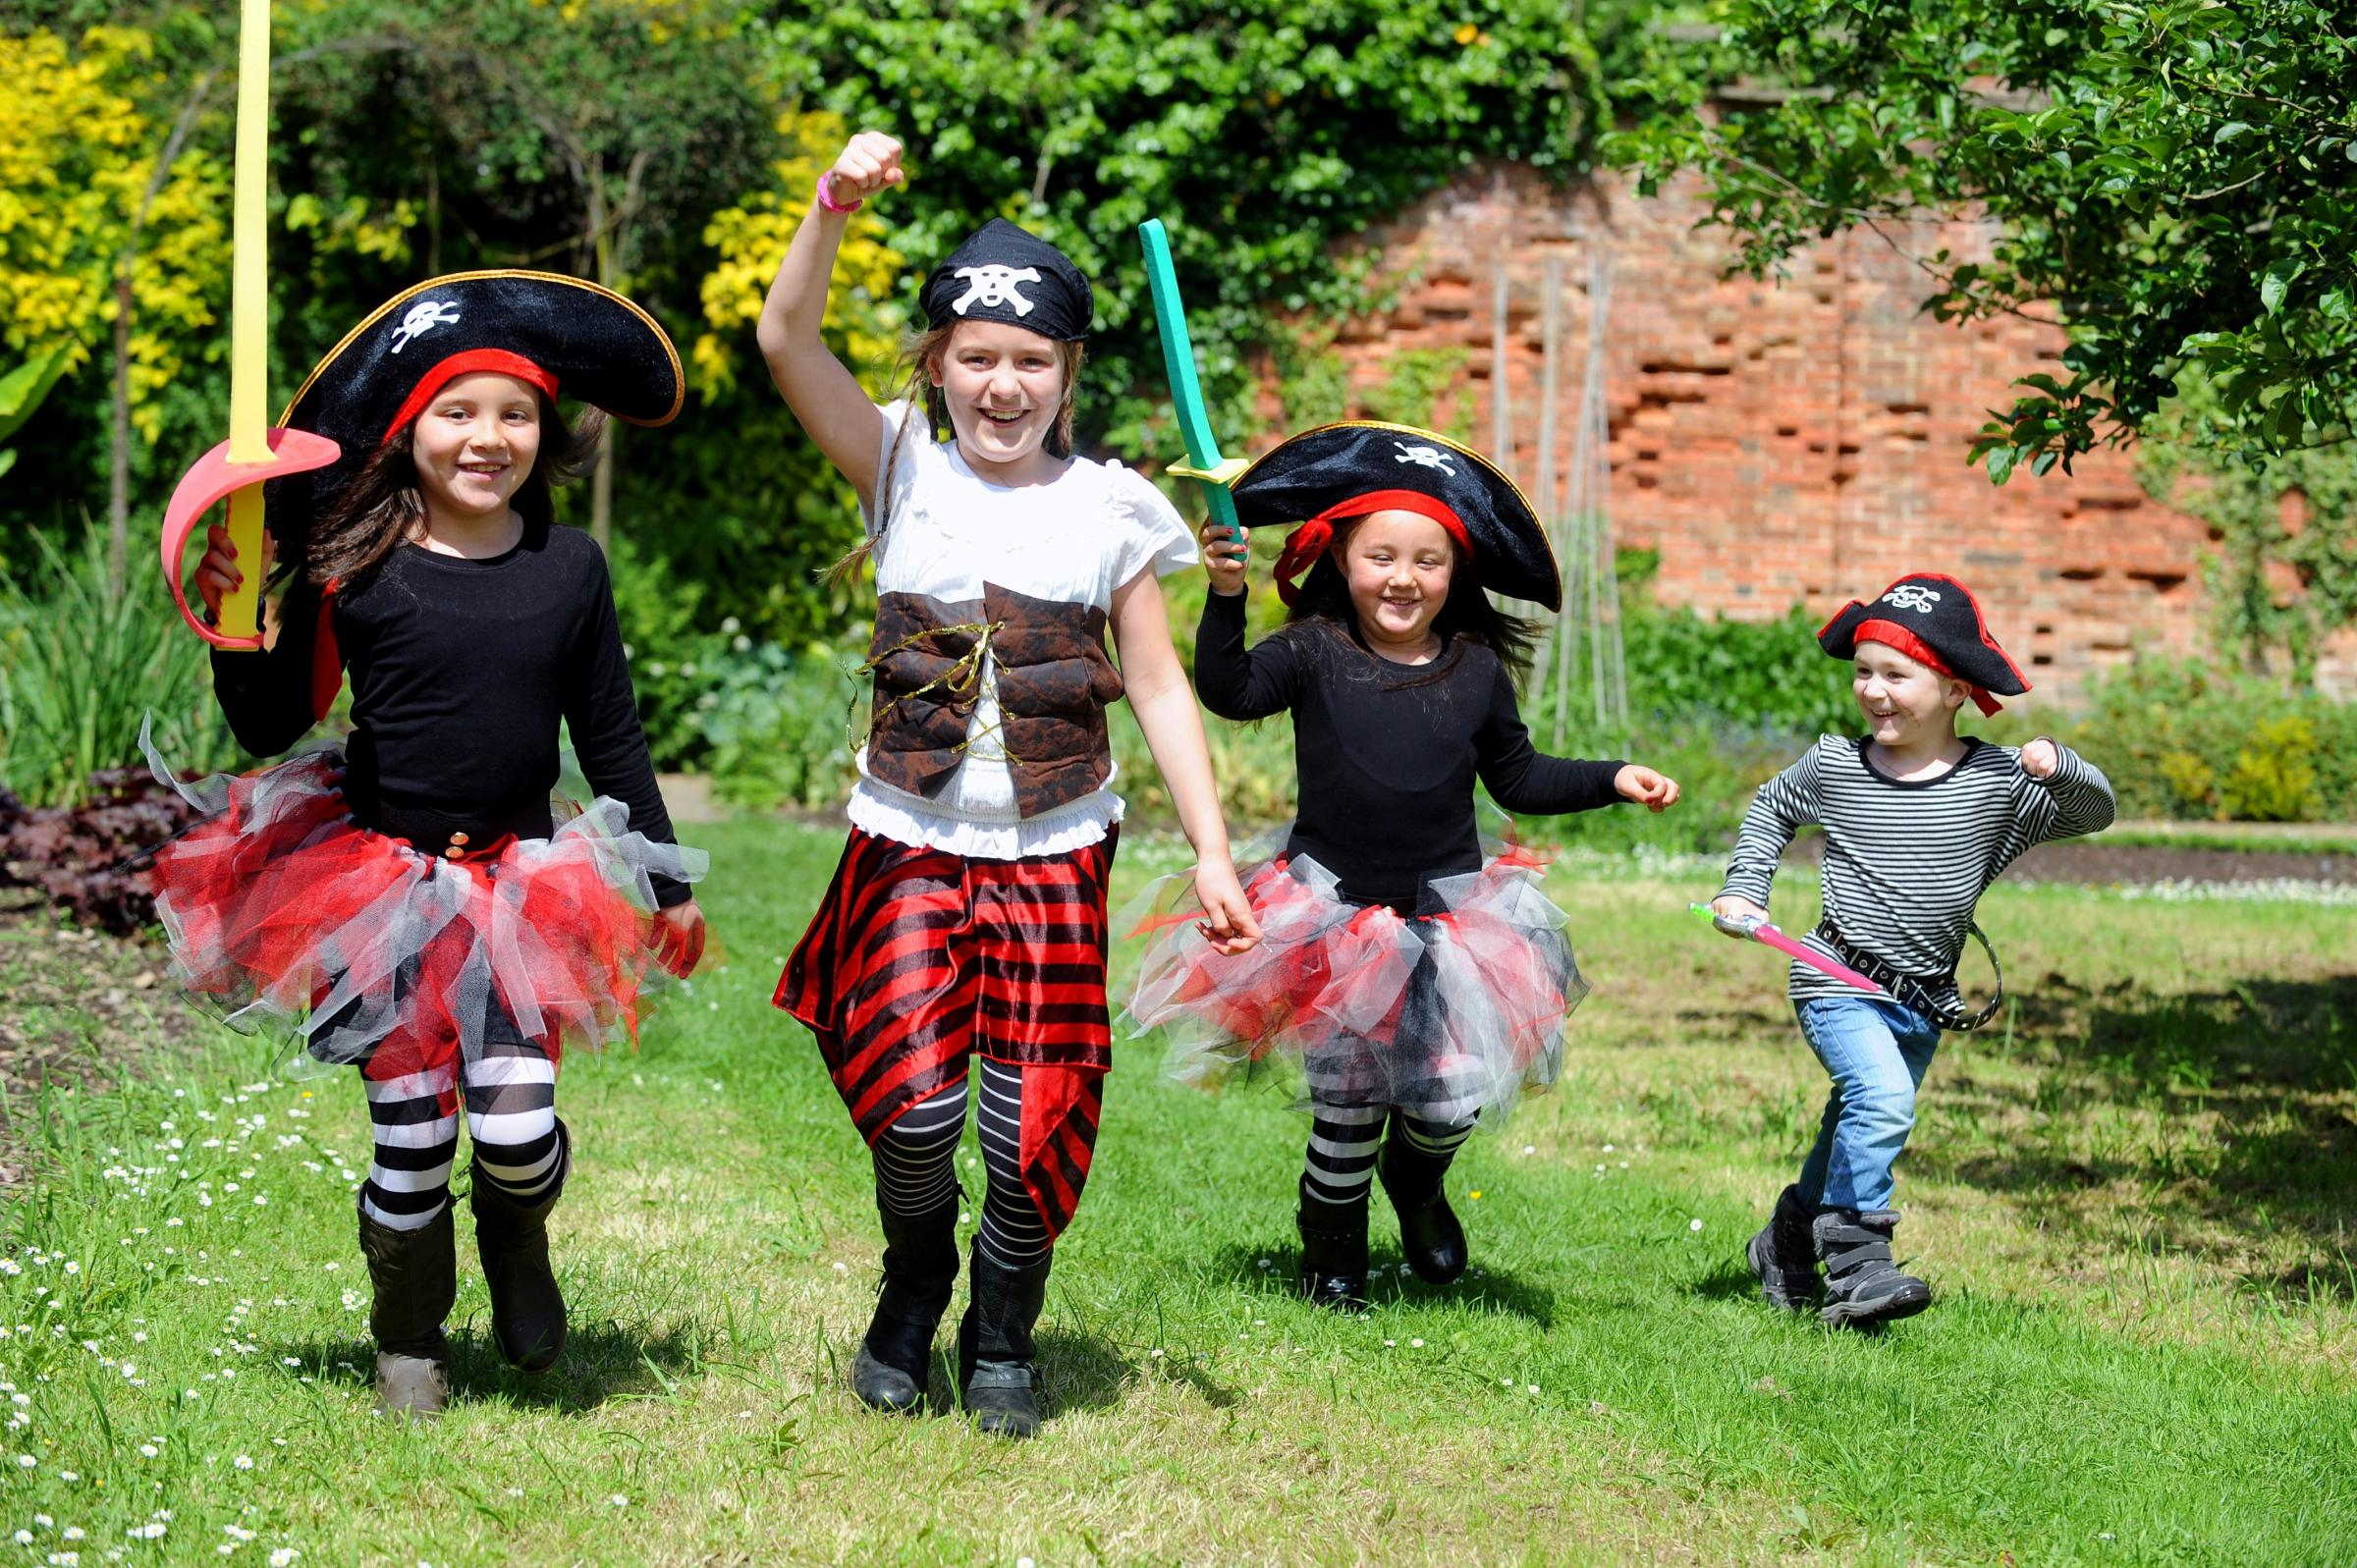 Ahoy! Pirates takeover Tredegar House